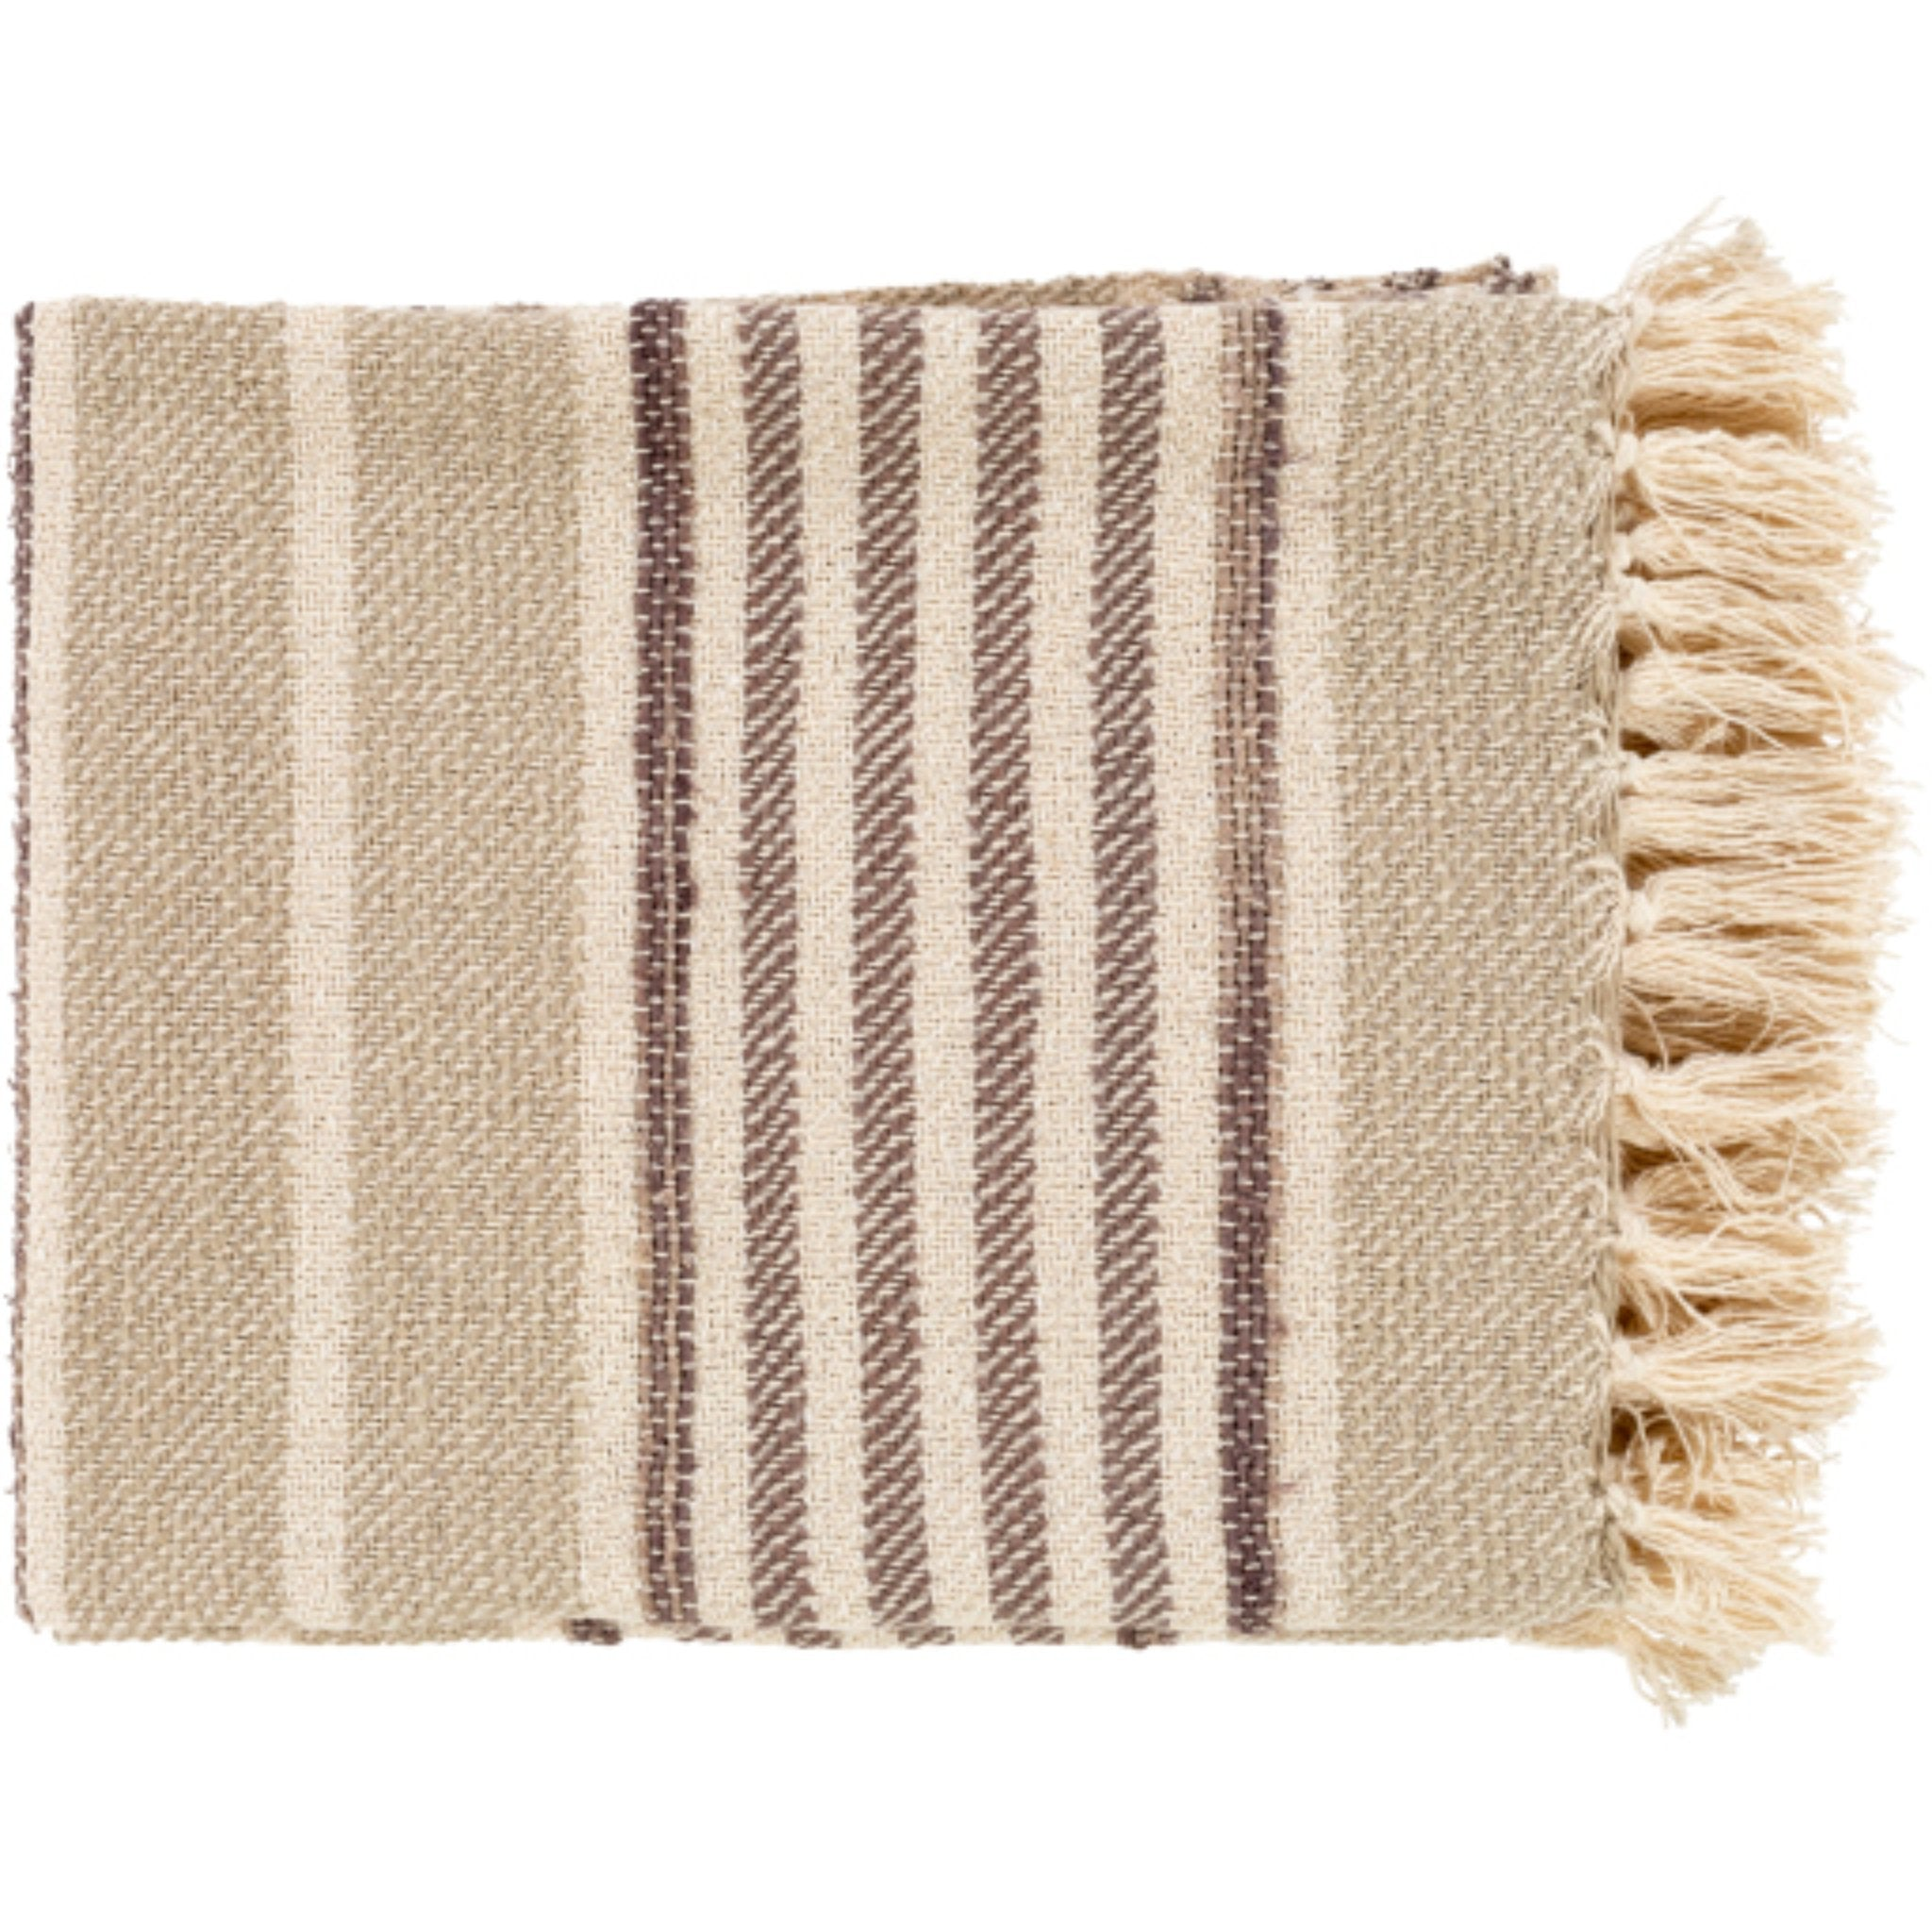 Load image into Gallery viewer, Beau Throw Blanket Khaki/Charcoal | Surya - Home Décor